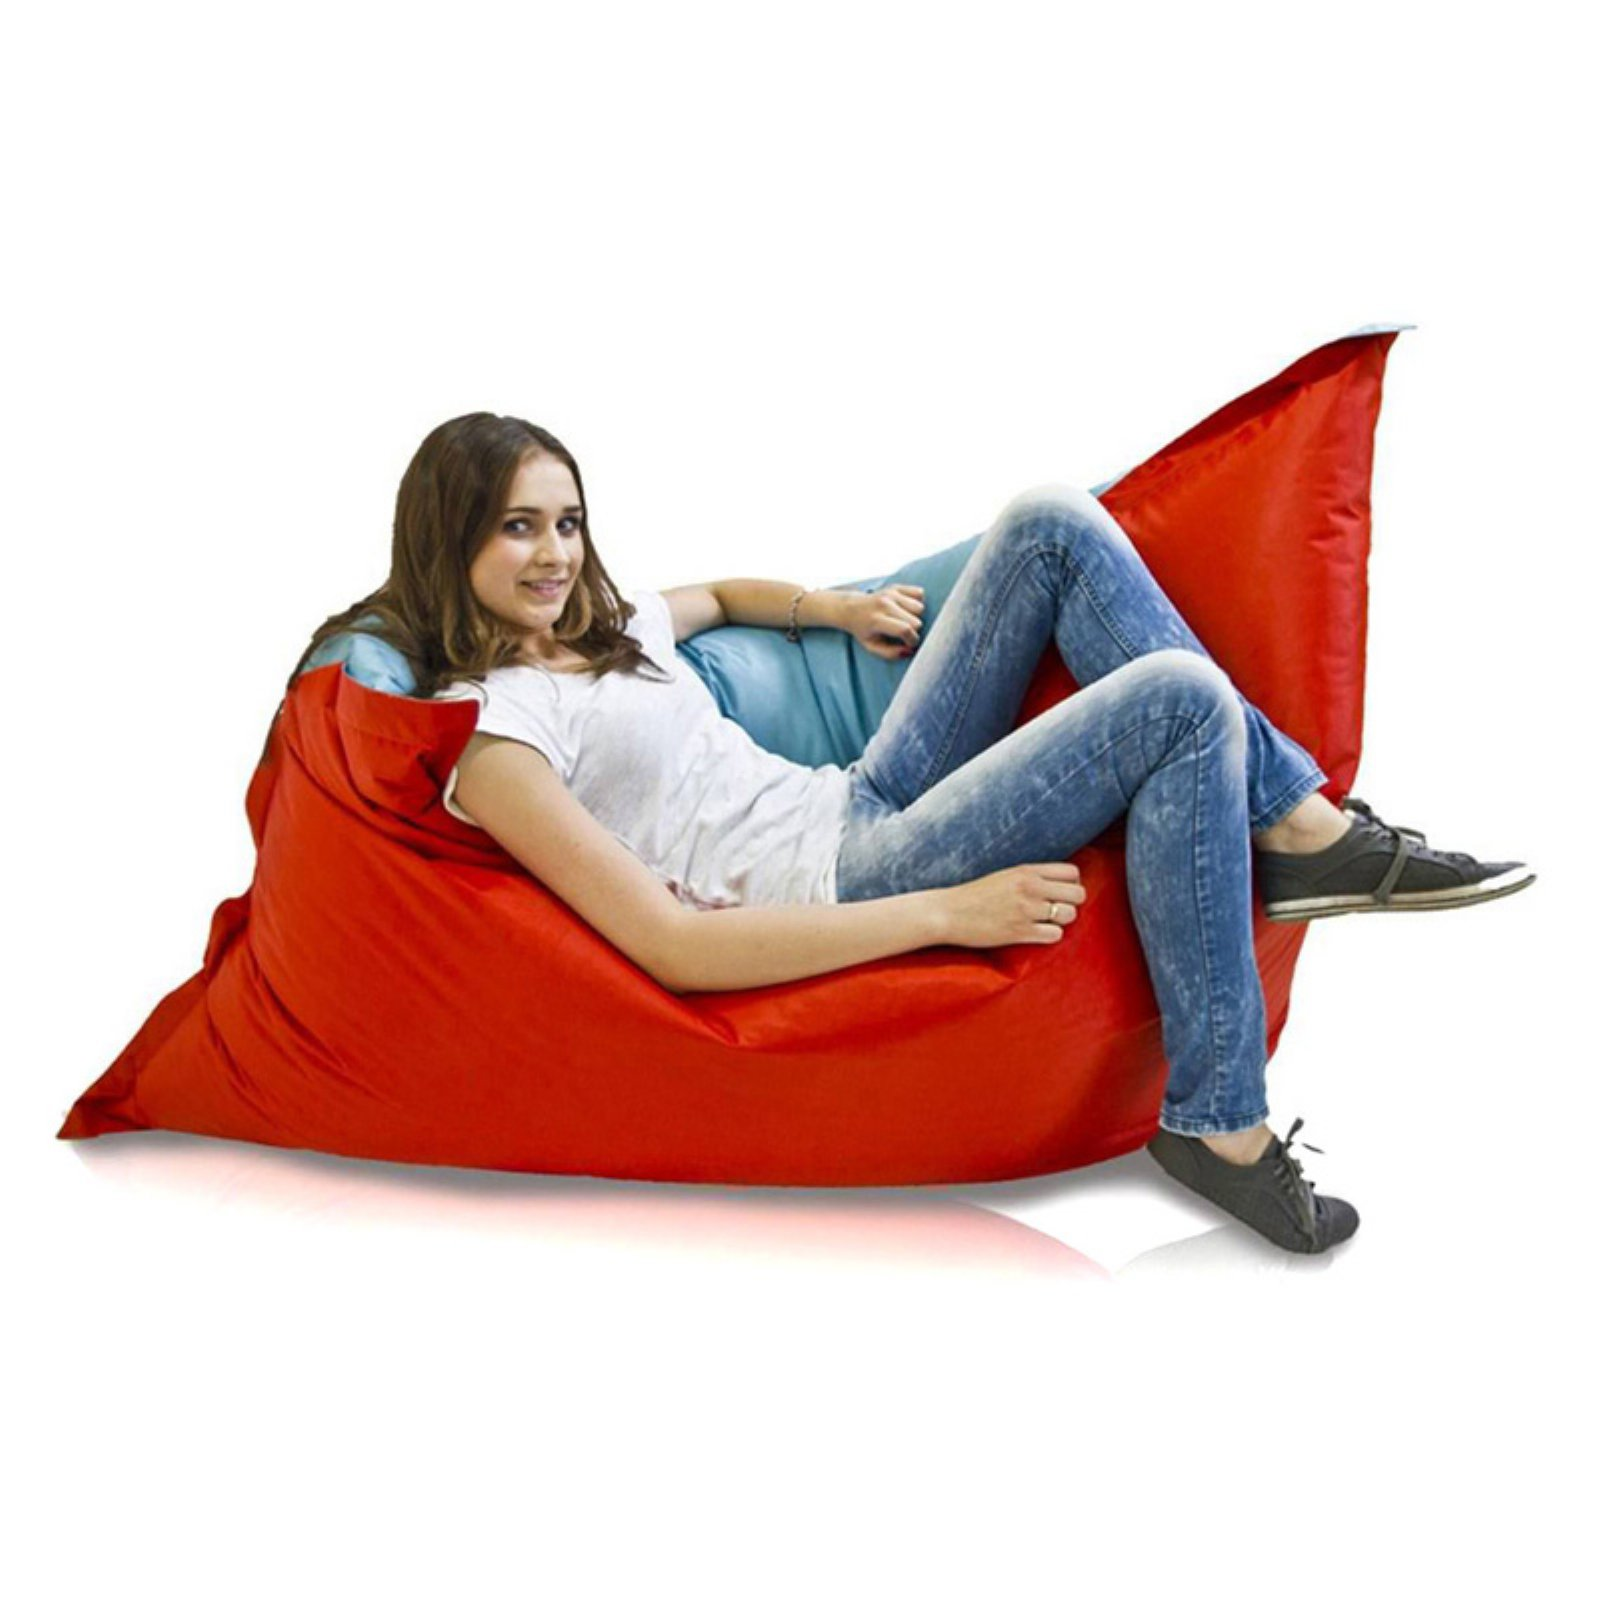 Giant Pillow Chair Turbo Beanbags Pillow Style Large Bean Bag Chair